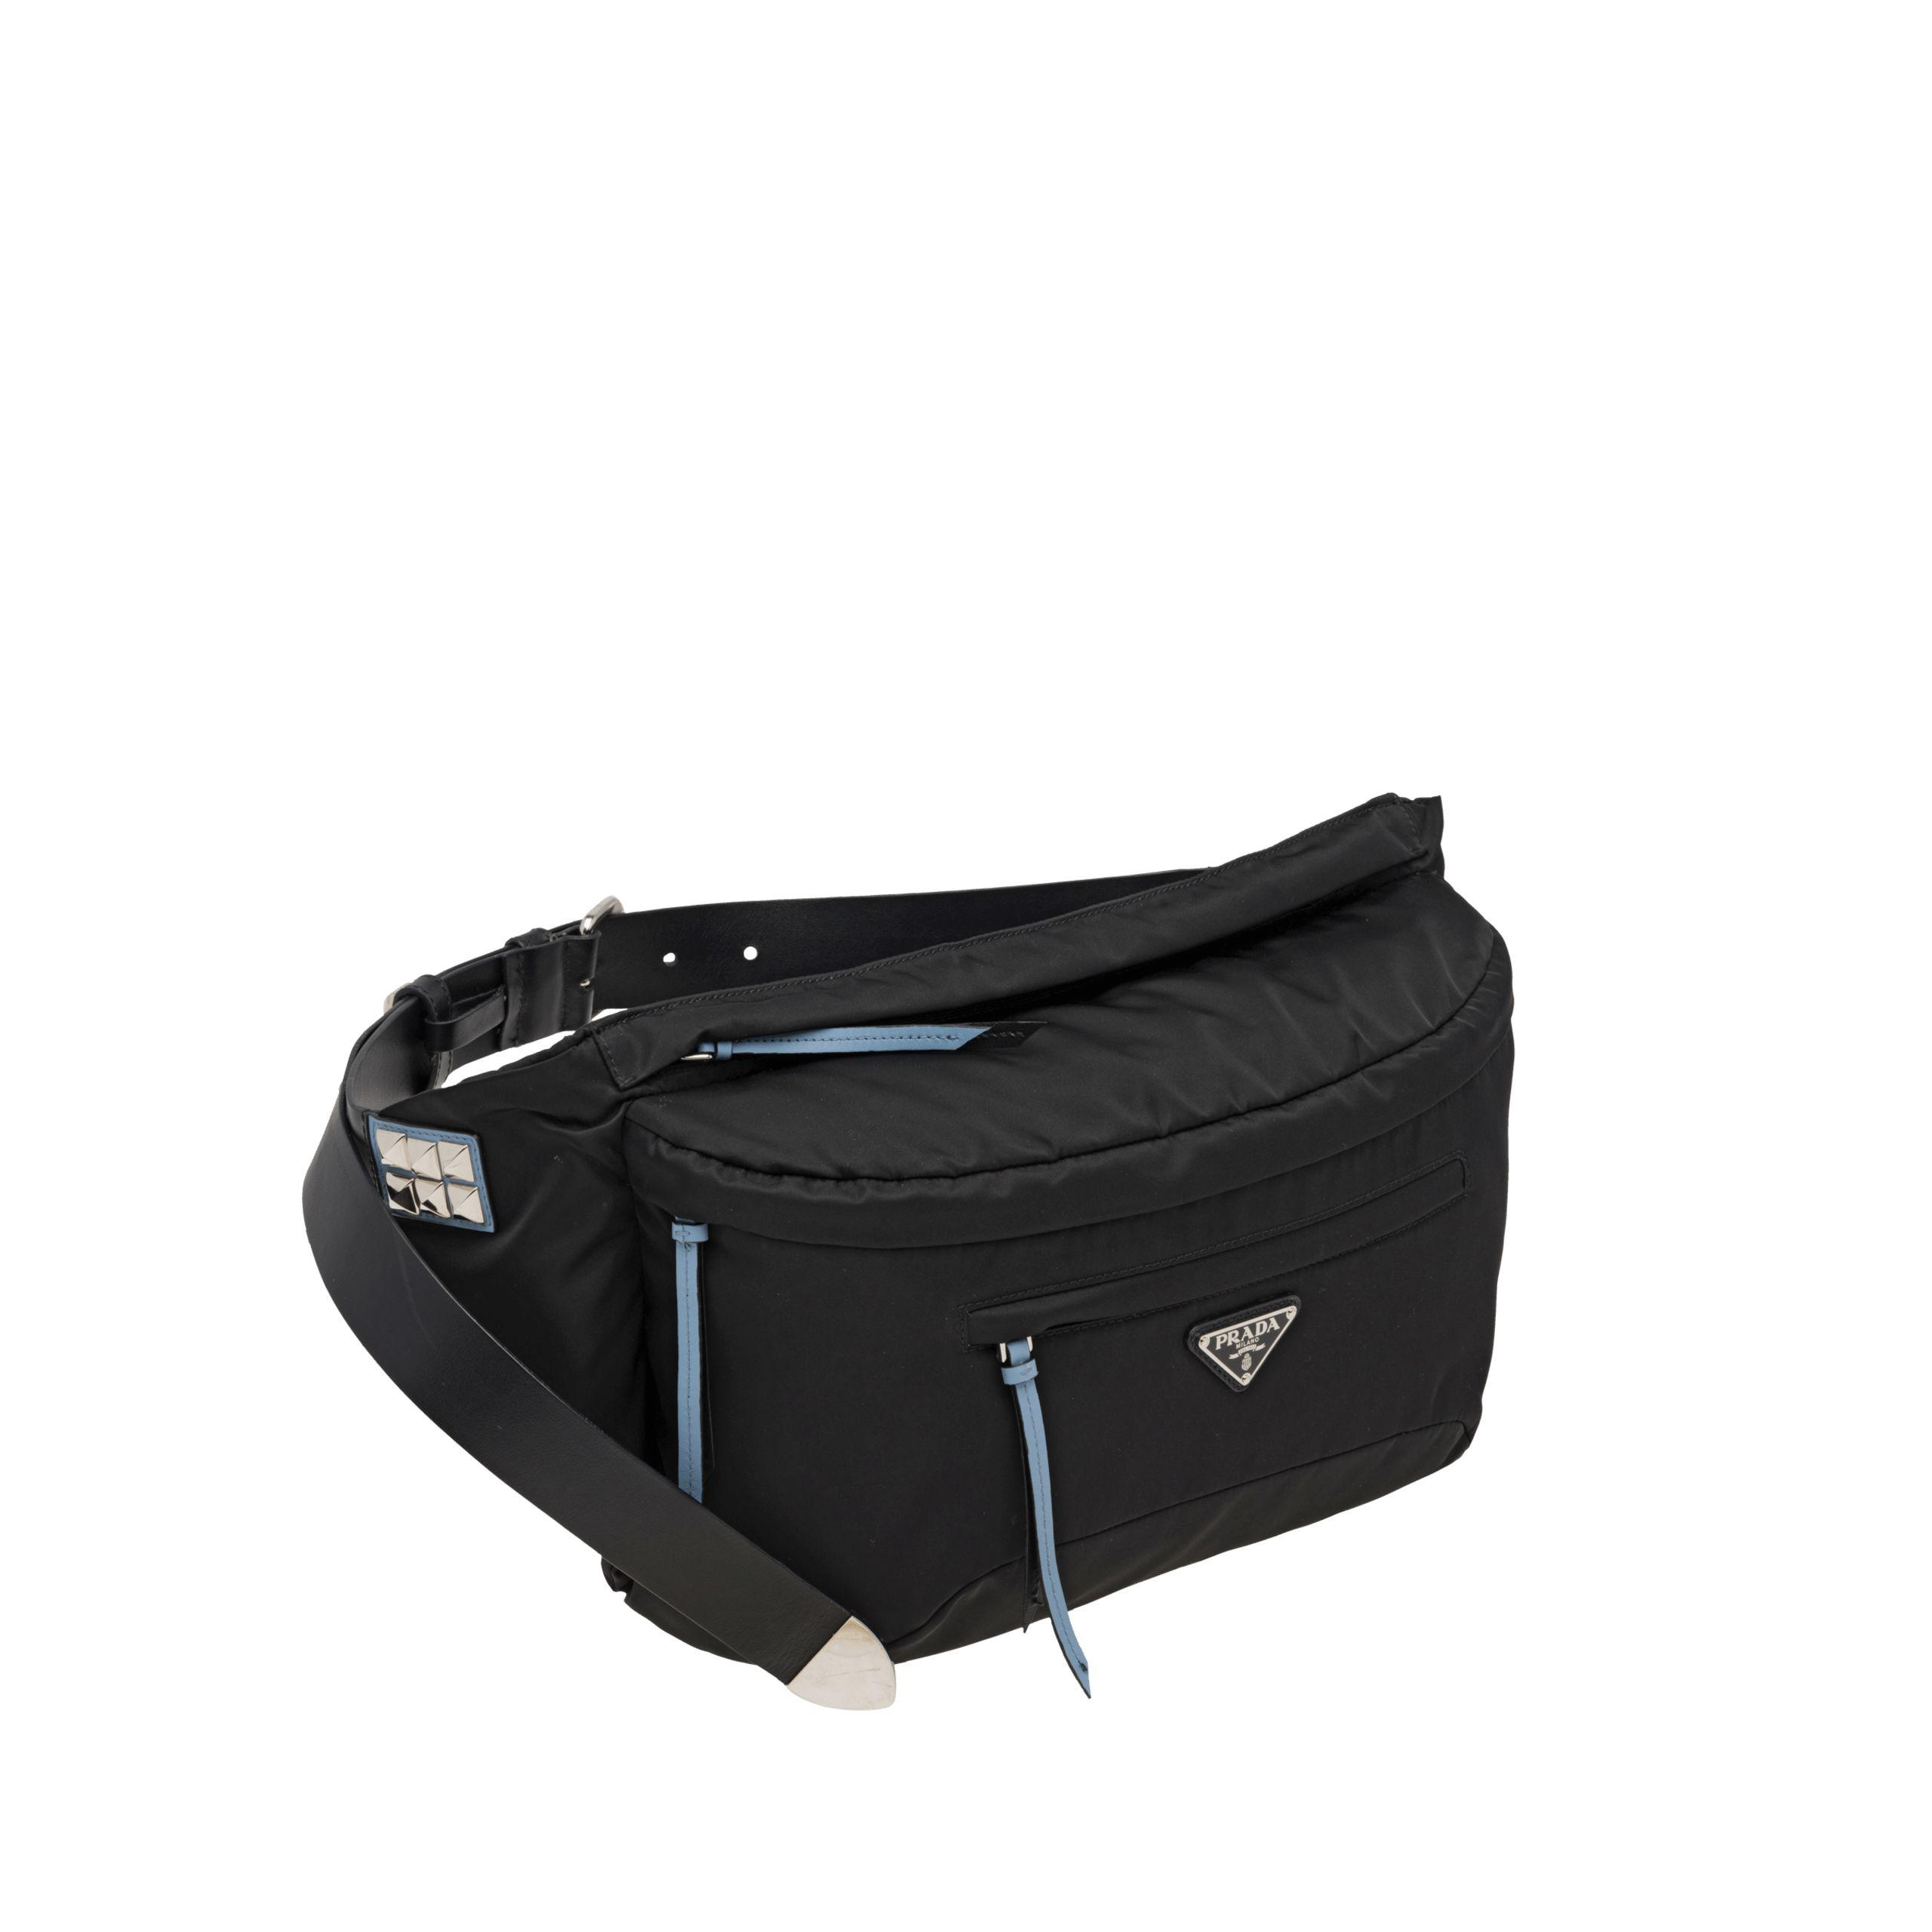 1f01dc050750 ... cheap prada black nylon belt bag lyst. view fullscreen 57564 f21c0